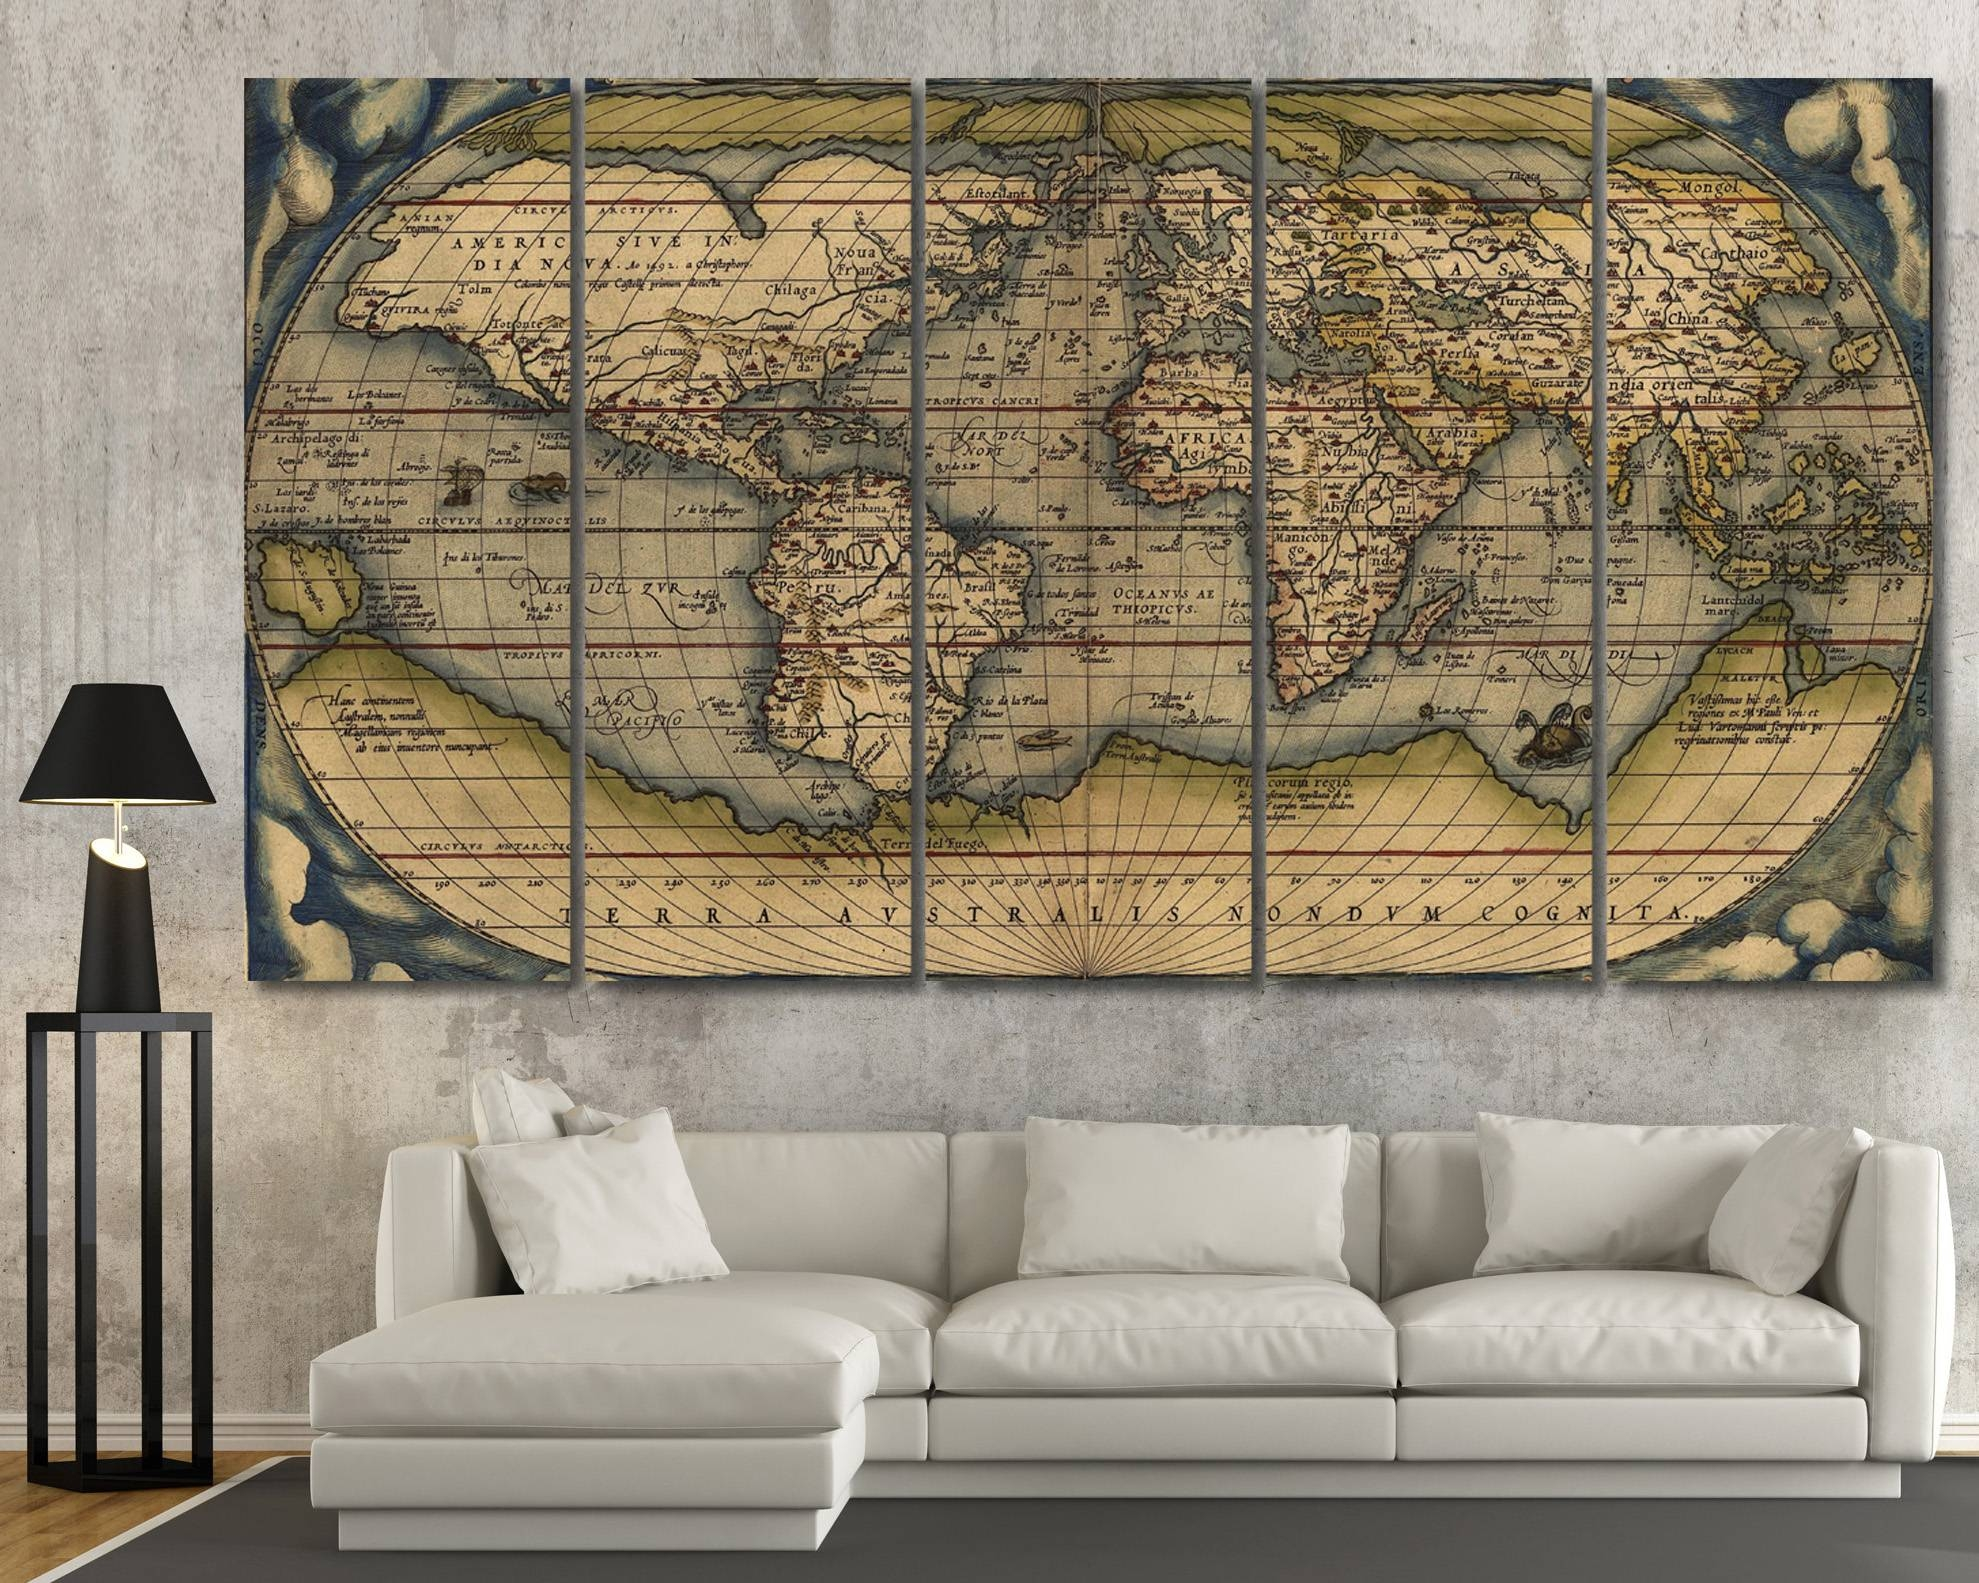 Large Vintage Wall Art Old World Map At Texelprintart Throughout Recent Maps For Wall Art (View 15 of 20)